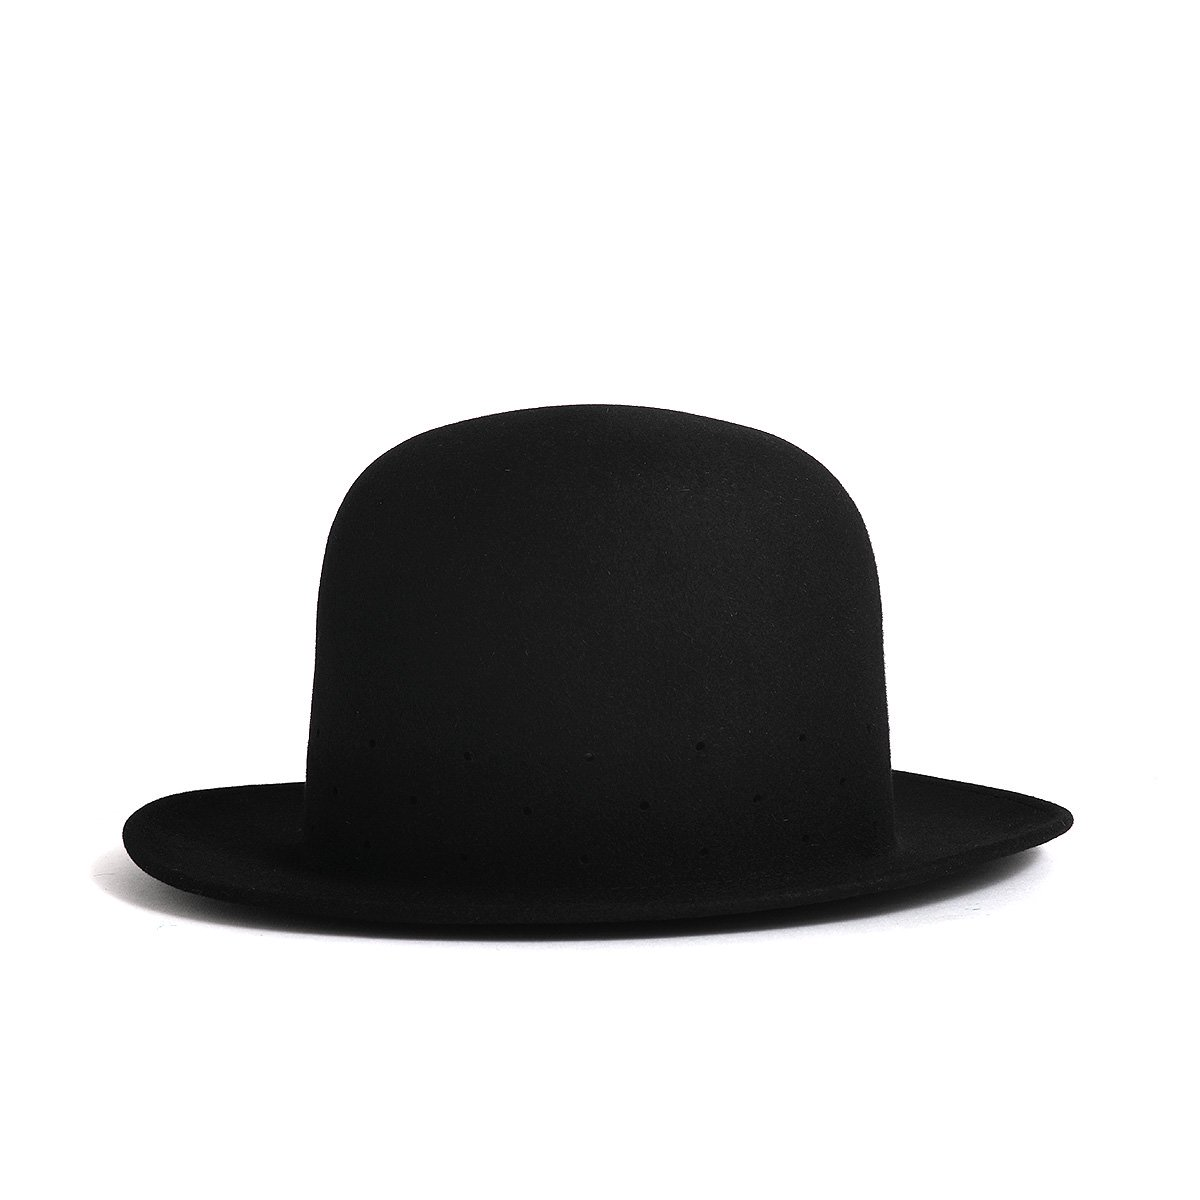 RABBIT FUR PUNCHING FREE HAT<img class='new_mark_img2' src='https://img.shop-pro.jp/img/new/icons16.gif' style='border:none;display:inline;margin:0px;padding:0px;width:auto;' />